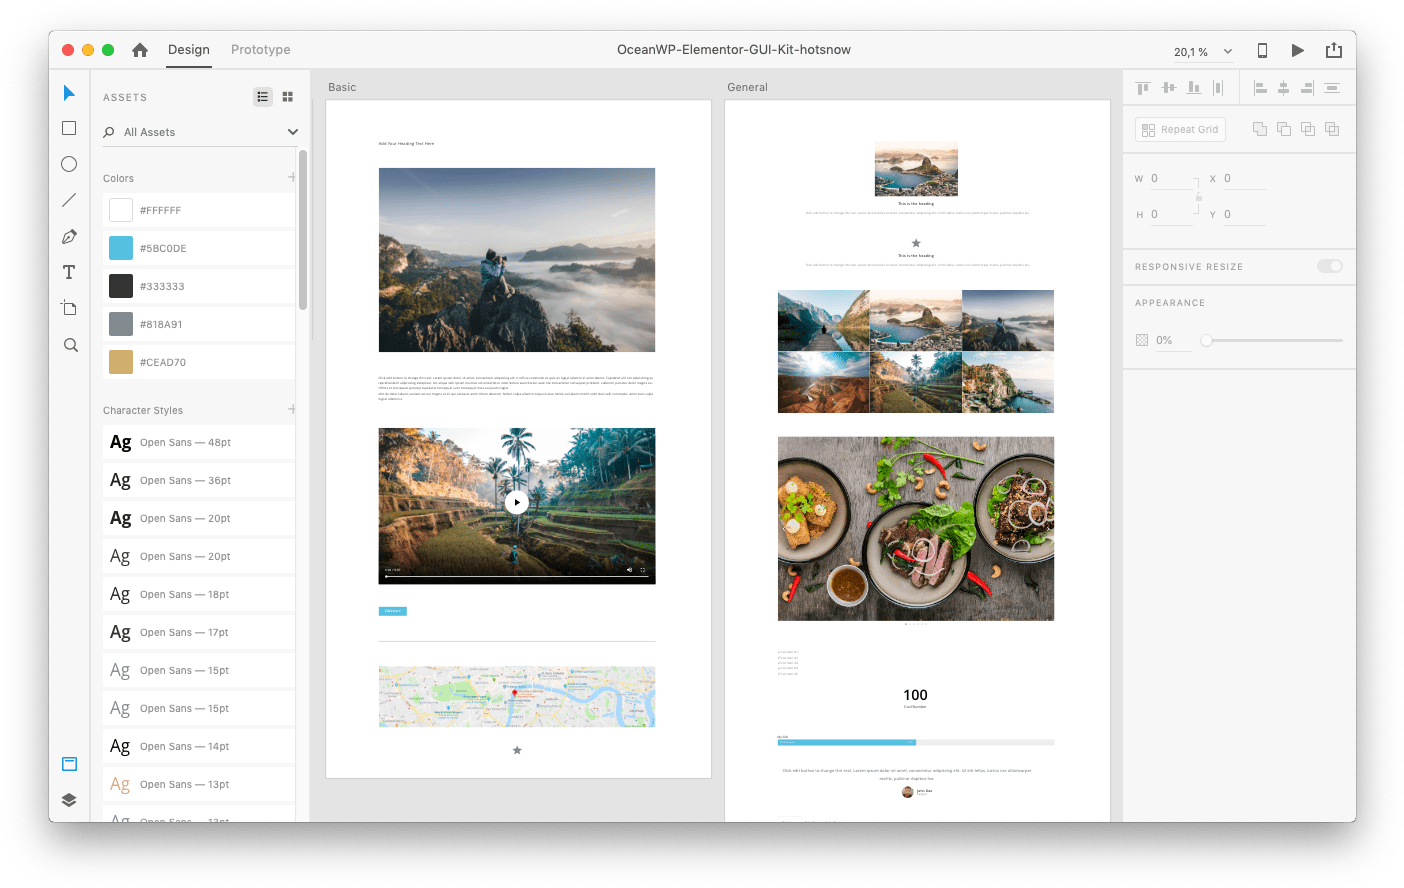 Download Free Adobe Xd Gui Kit PNG Image with No Background - PNGkey com